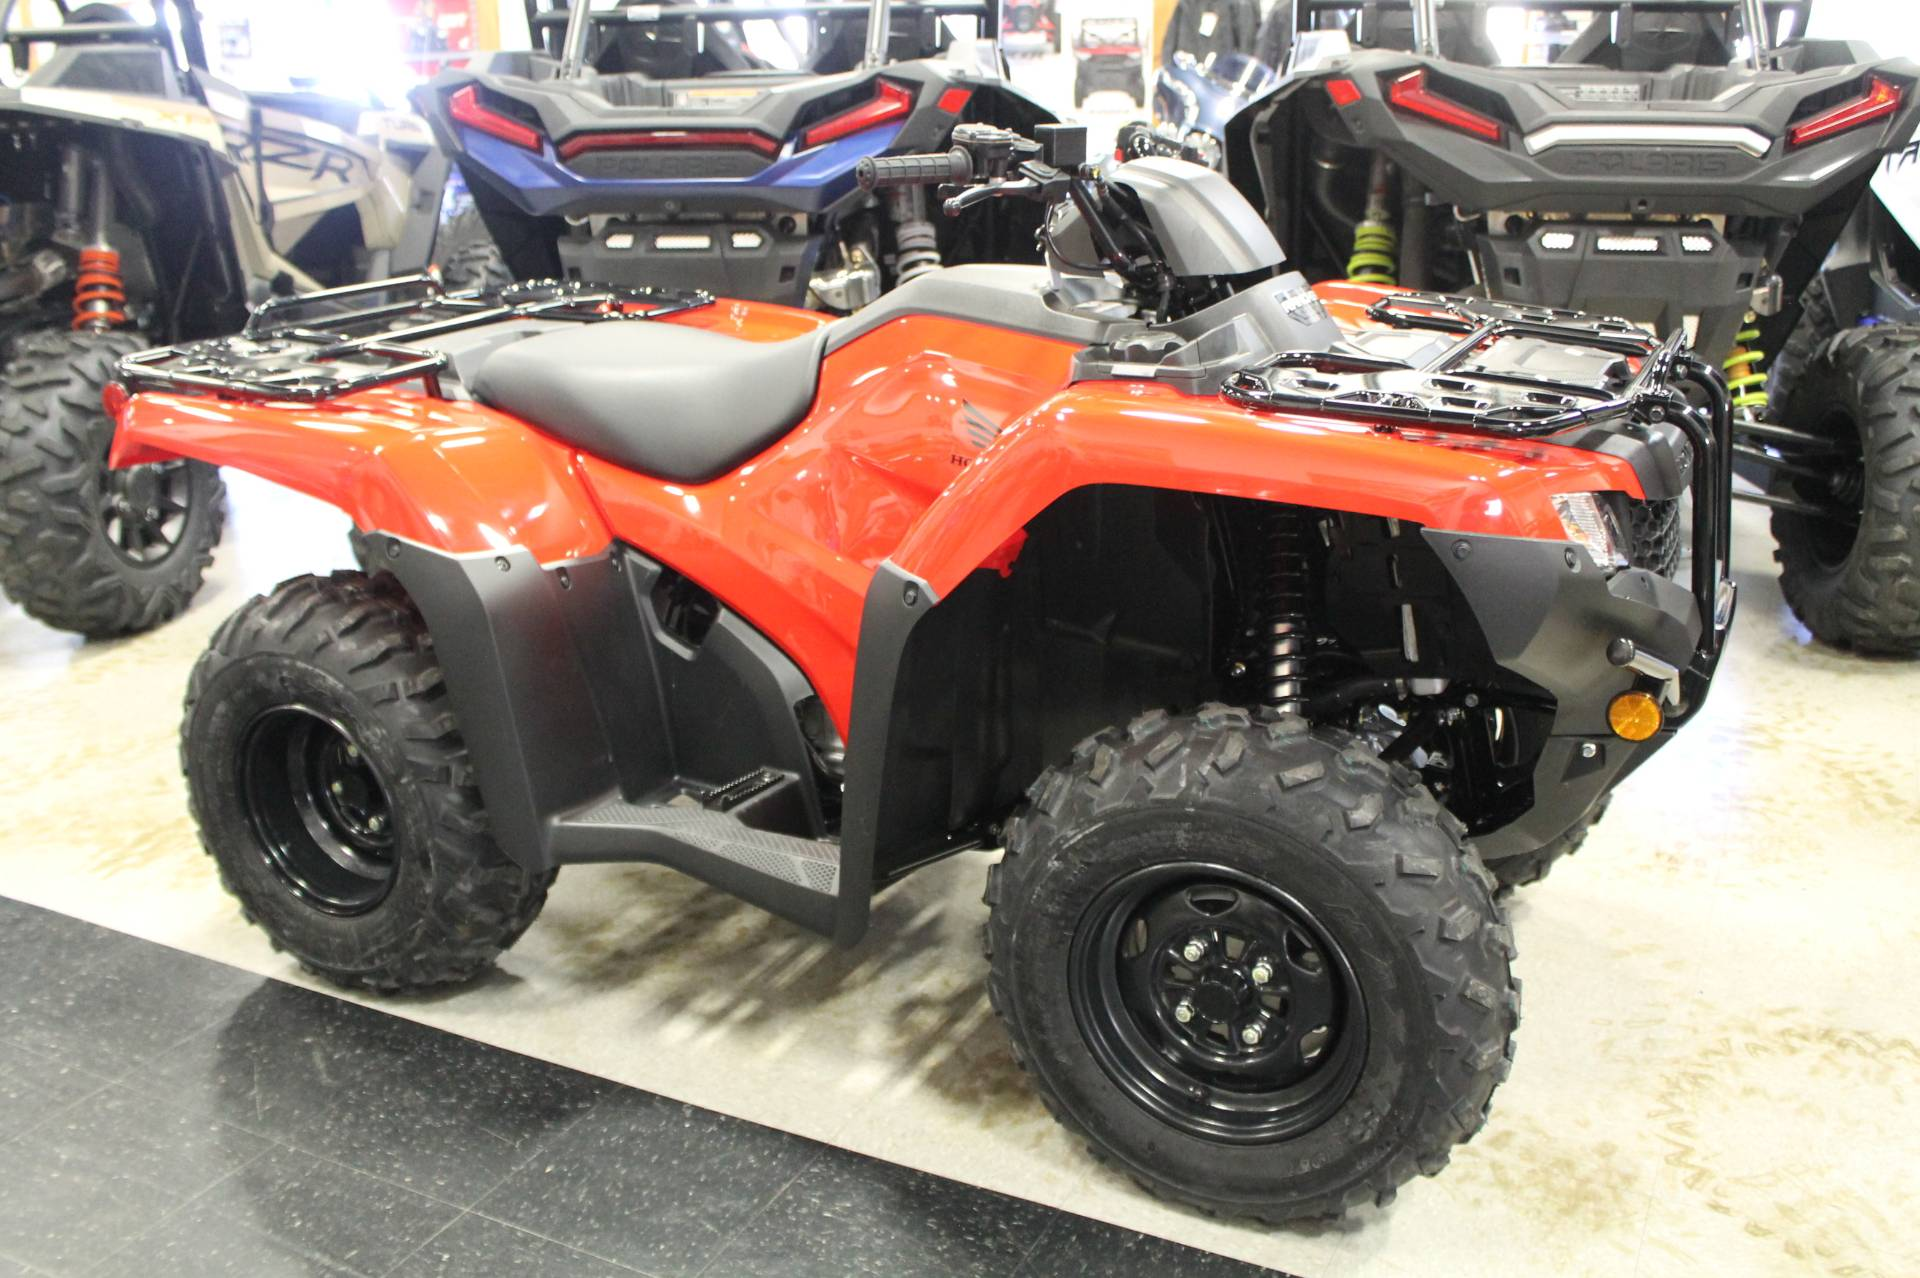 2021 Honda FourTrax Rancher 4x4 in Adams, Massachusetts - Photo 1